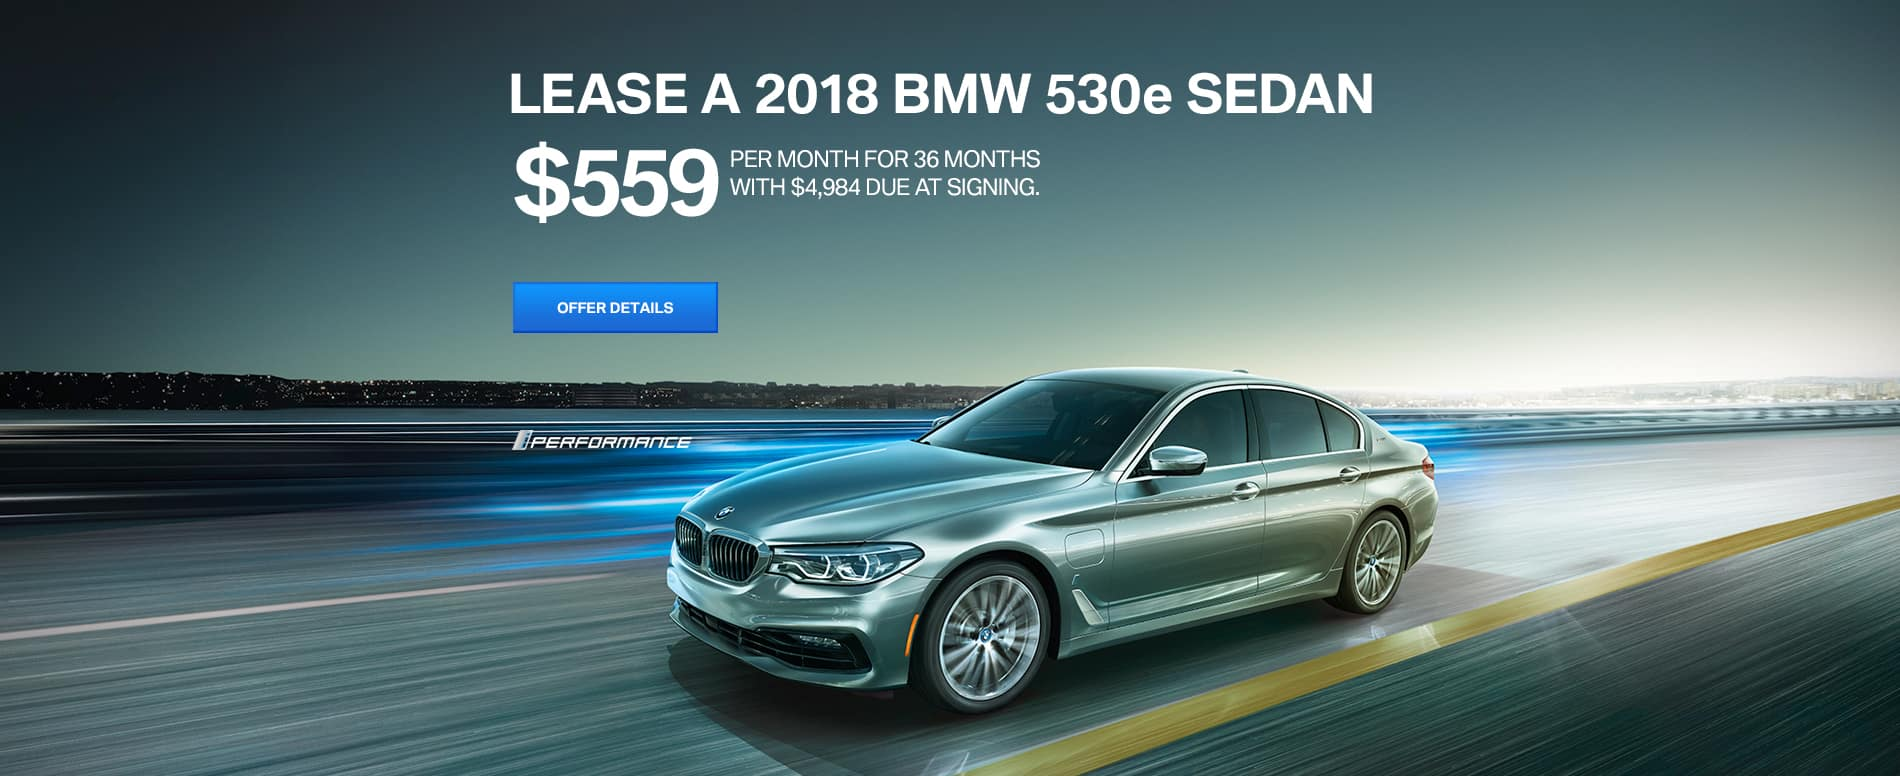 Bob smith bmw new bmw and used car dealer in calabasas ca for Mercedes benz of calabasas staff